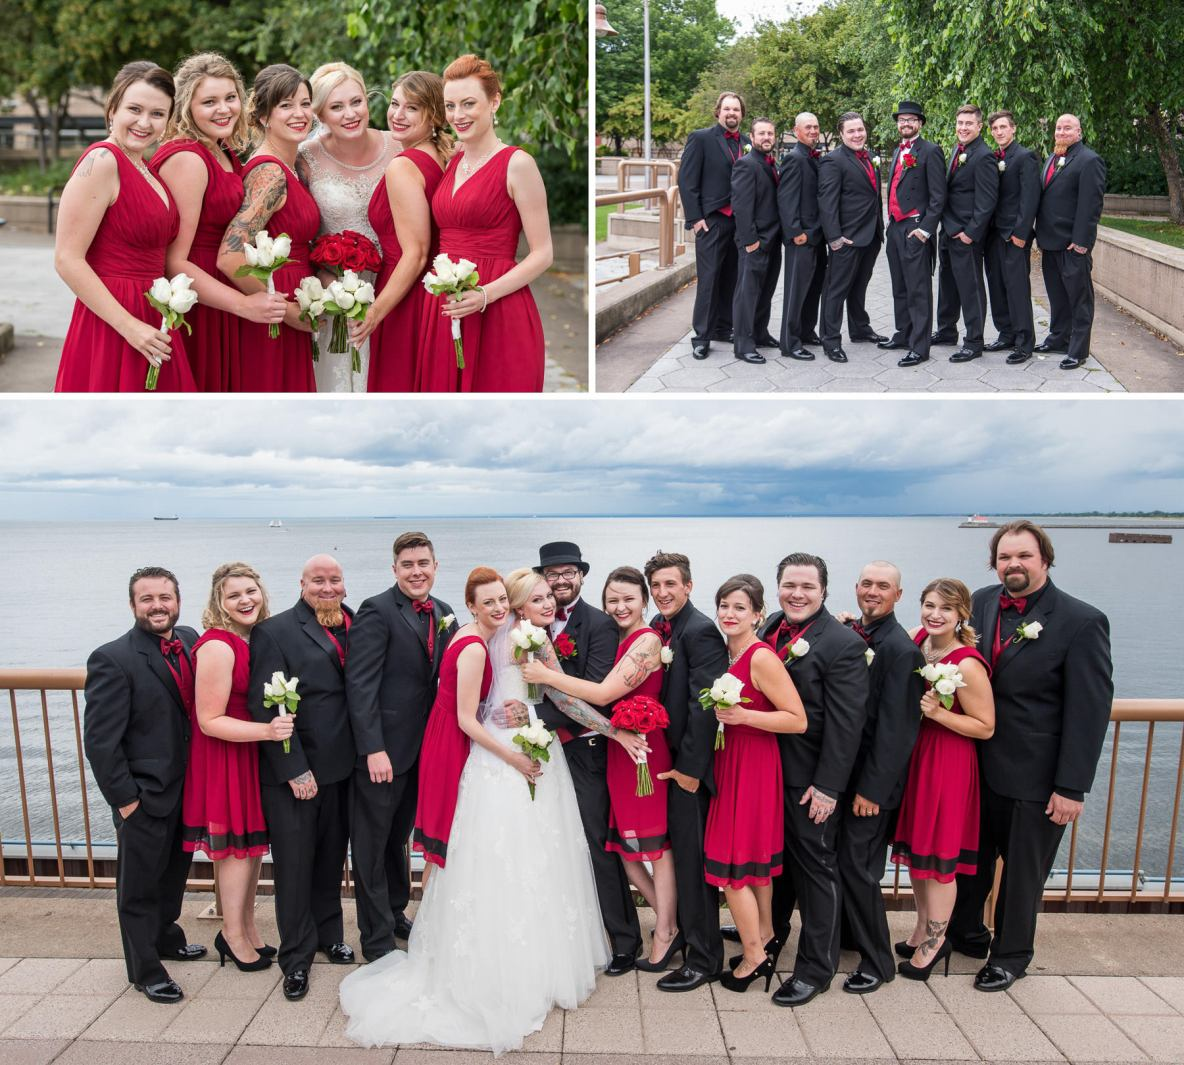 The wedding party wore black and red.